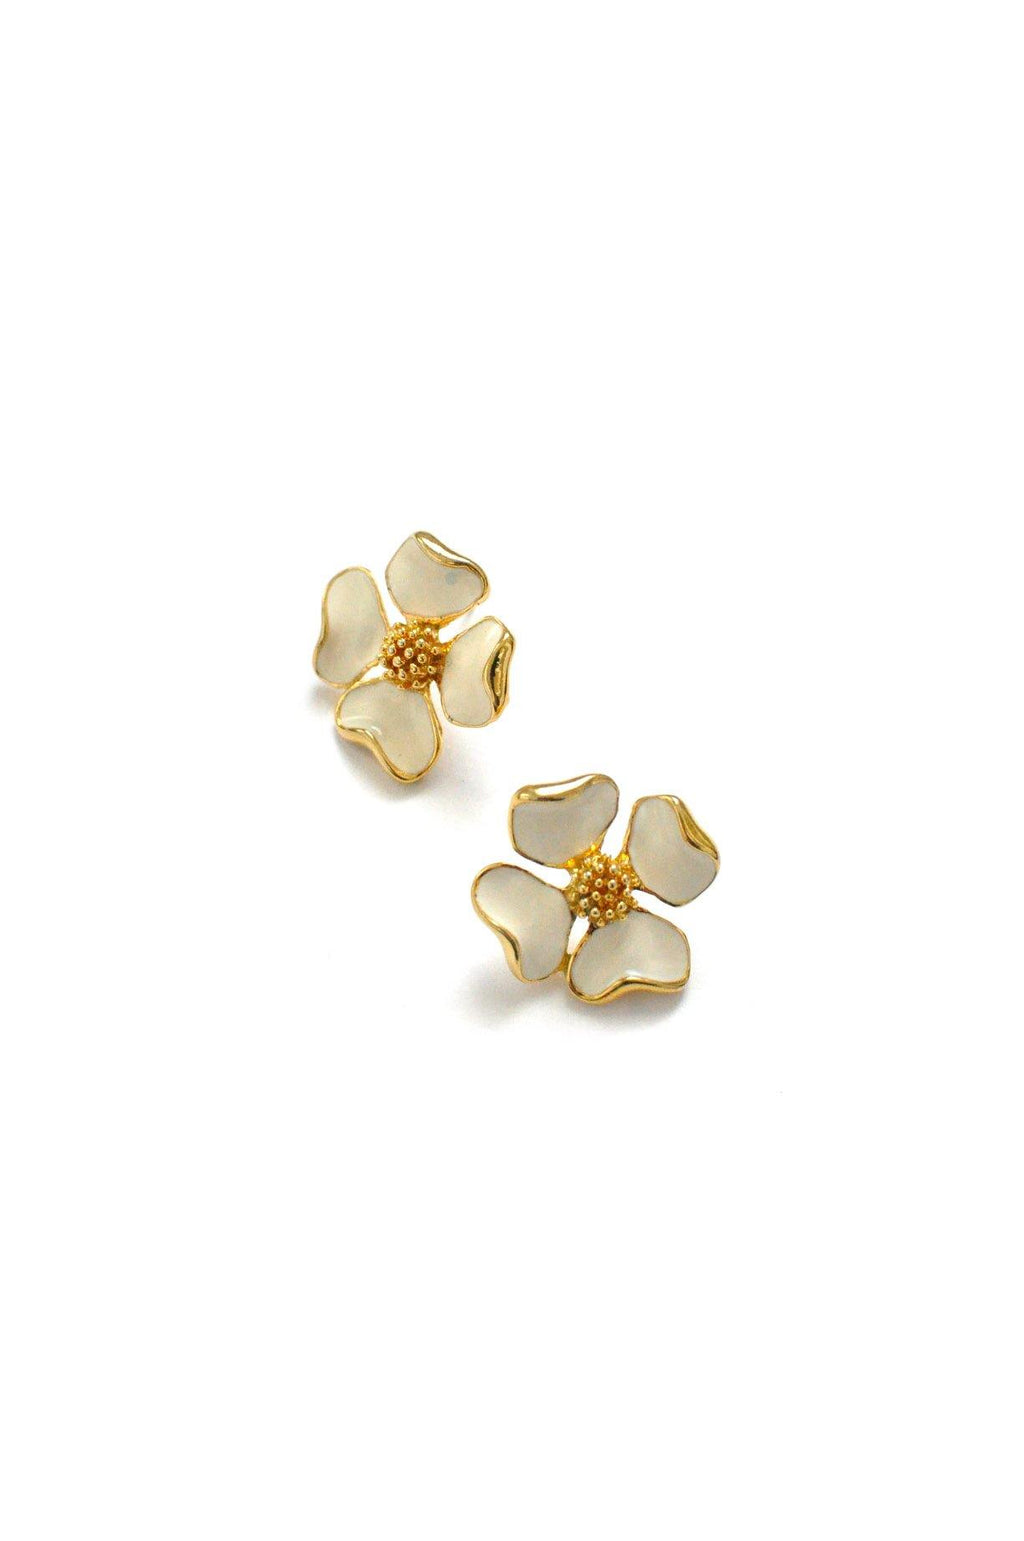 Enamel Floral Pierced Earrings